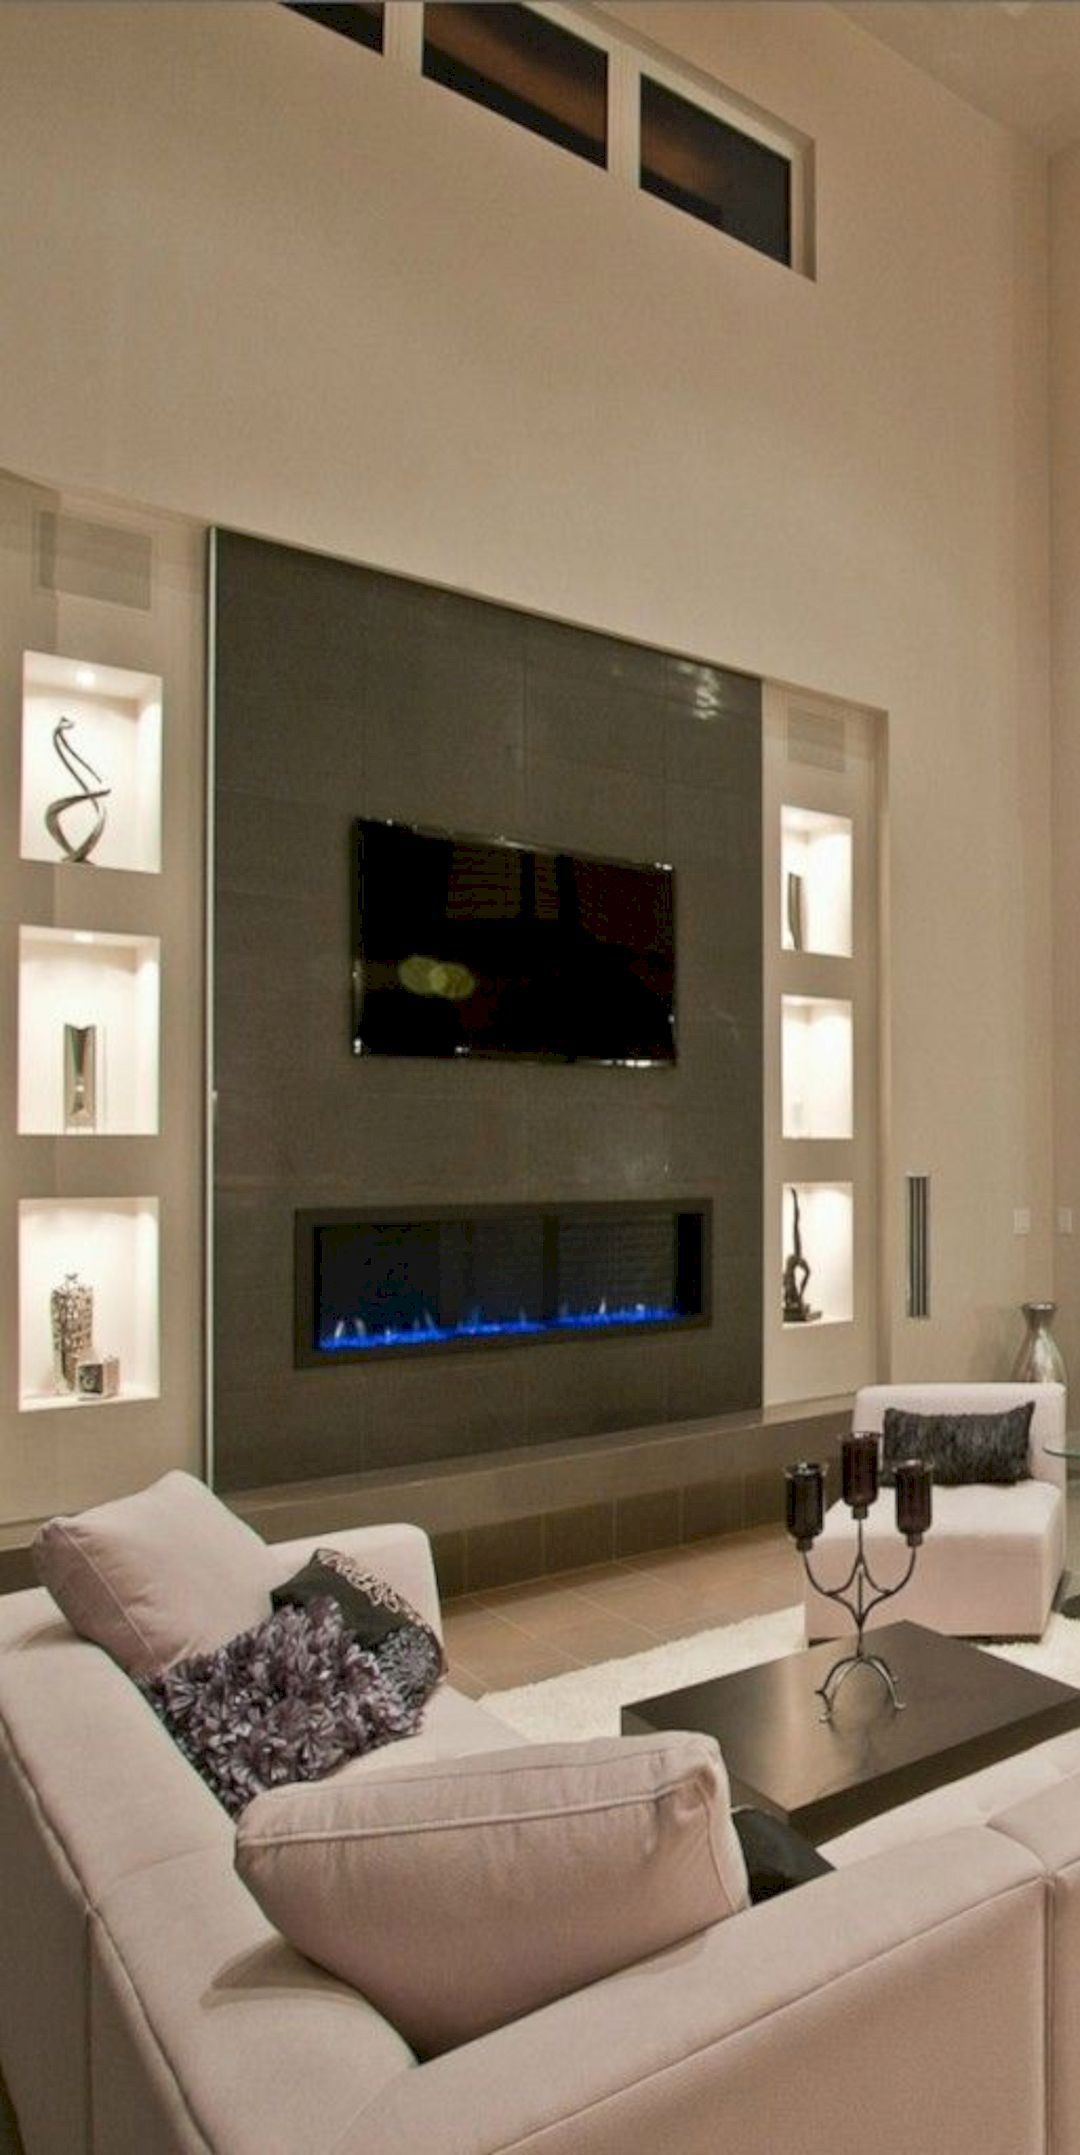 Creative Design Ideas For Exposed Pipes Fireplace Tv Wall Family Room Design Wall Units With Fireplace